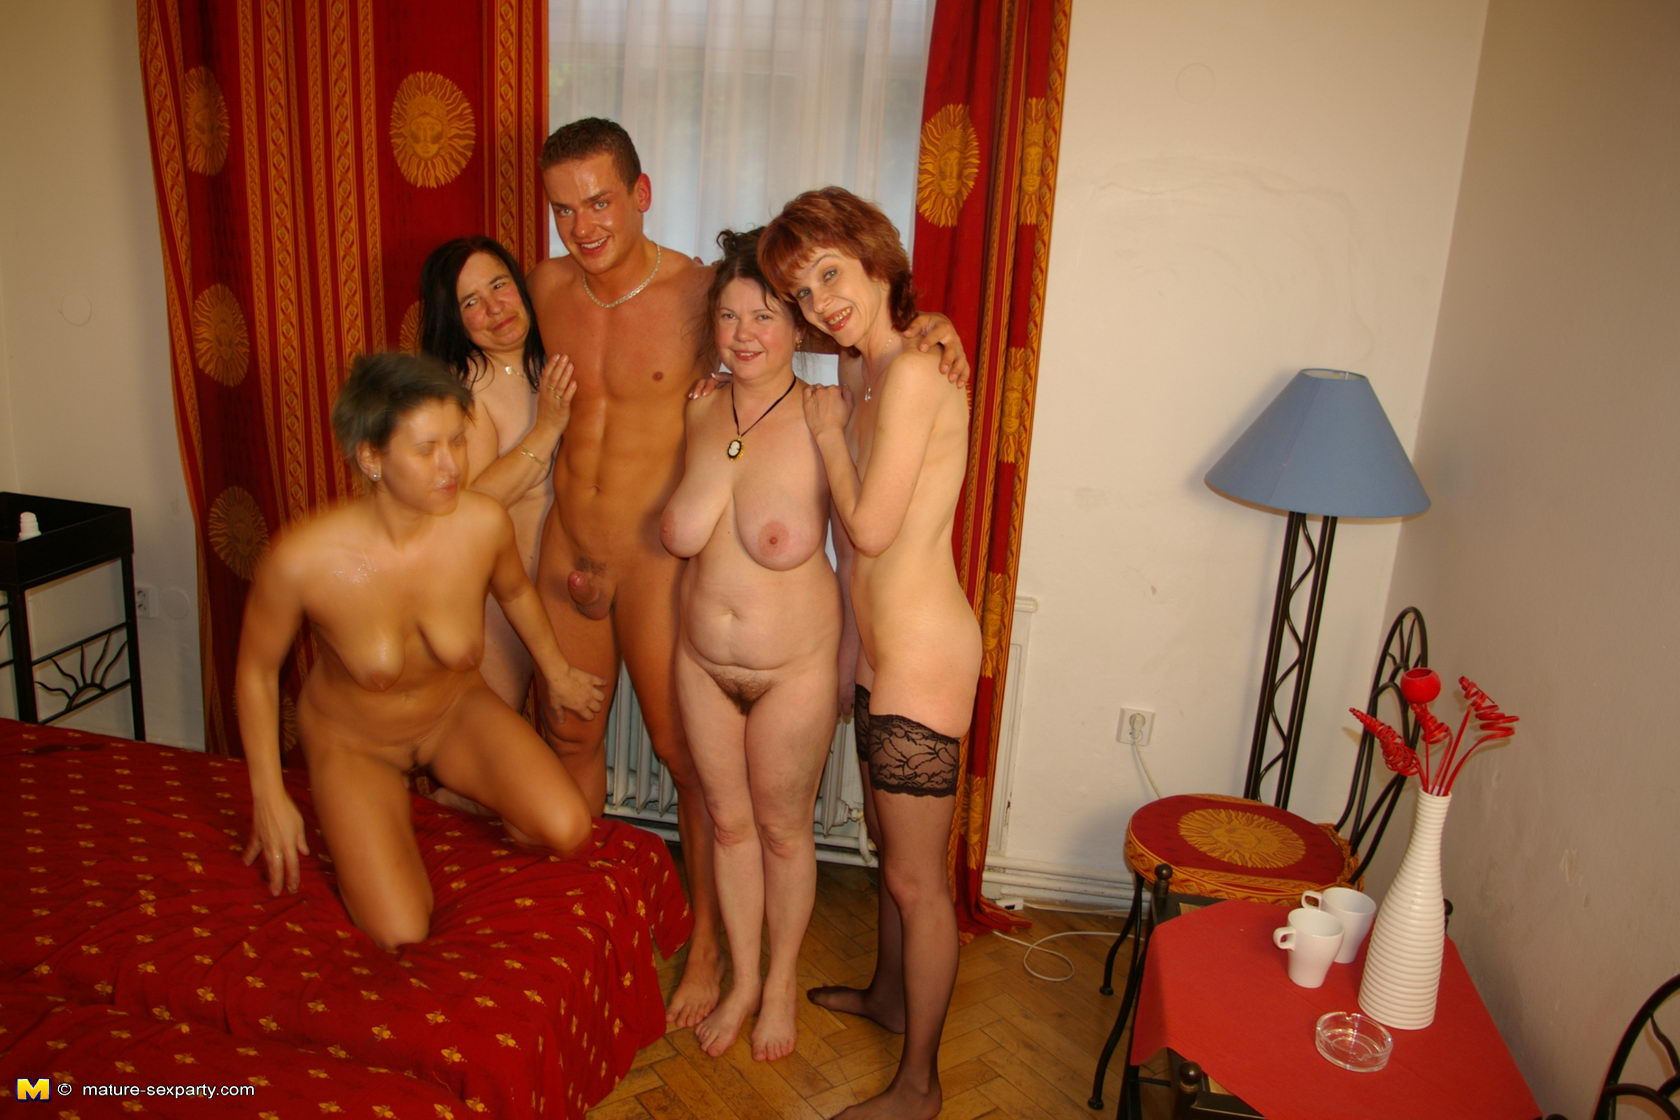 Loligirls Pictures Of Hot Sex Party Naked